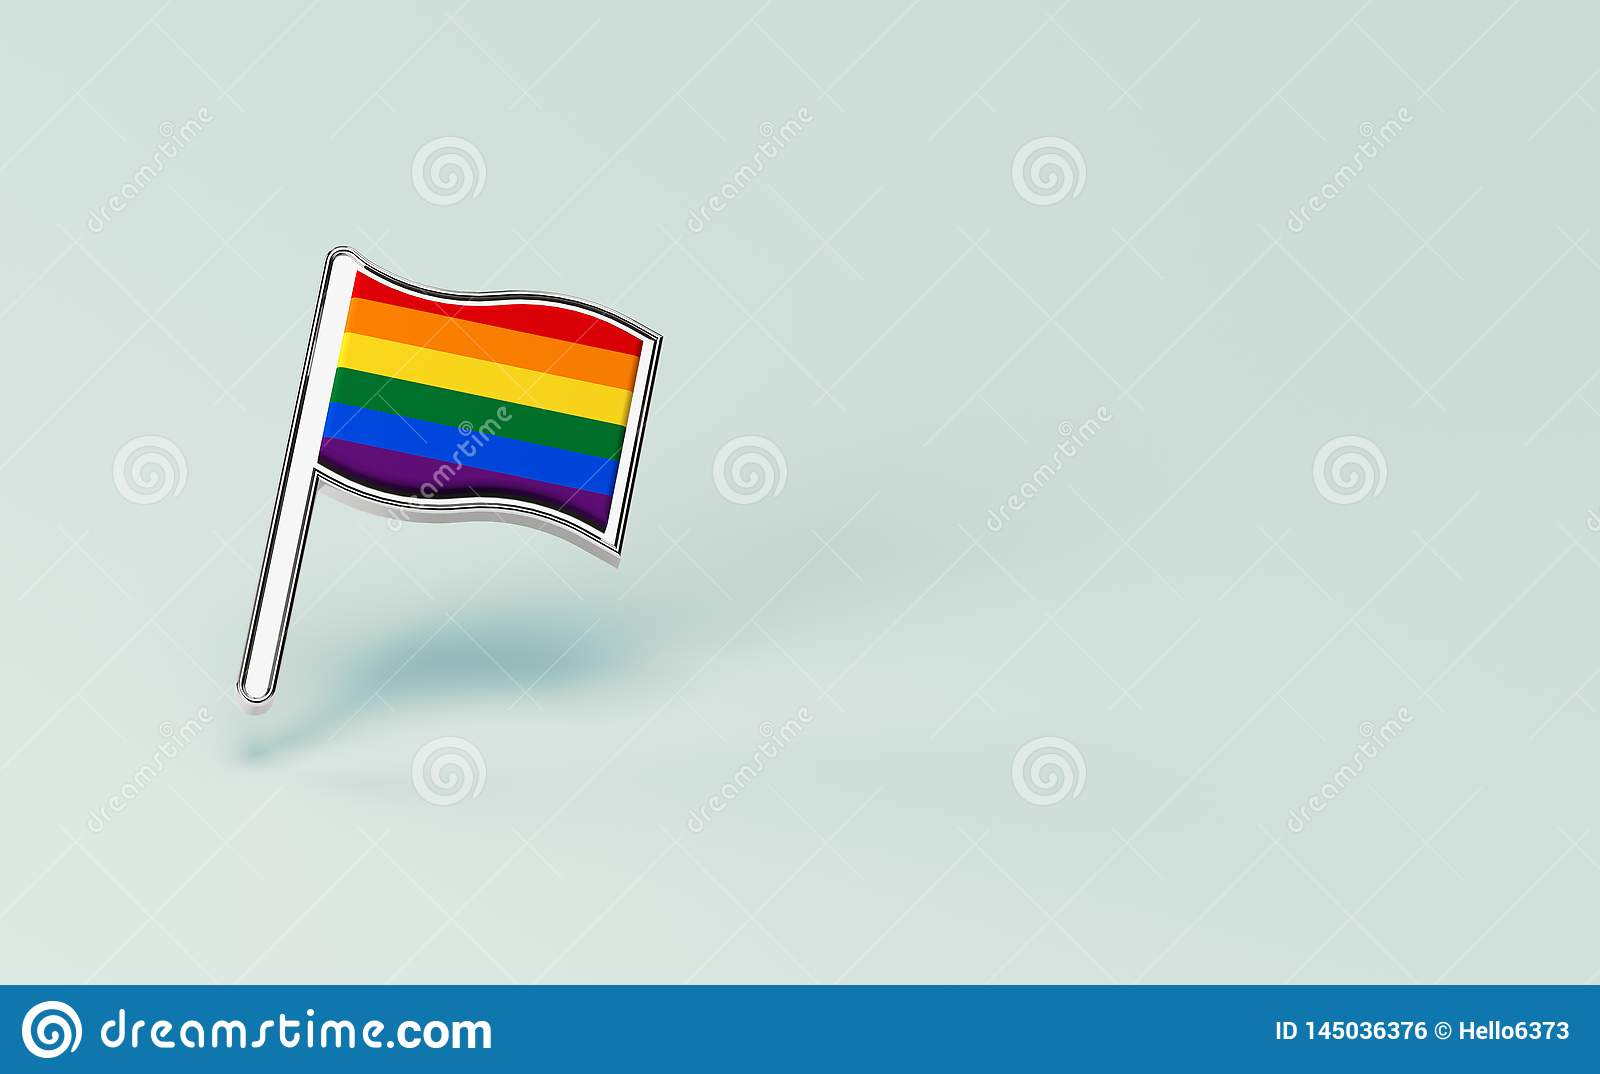 Rainbow LGBTQ flag. Gay pride month symbol concept. Isolated on pastel green background with copy space. 3D rendering